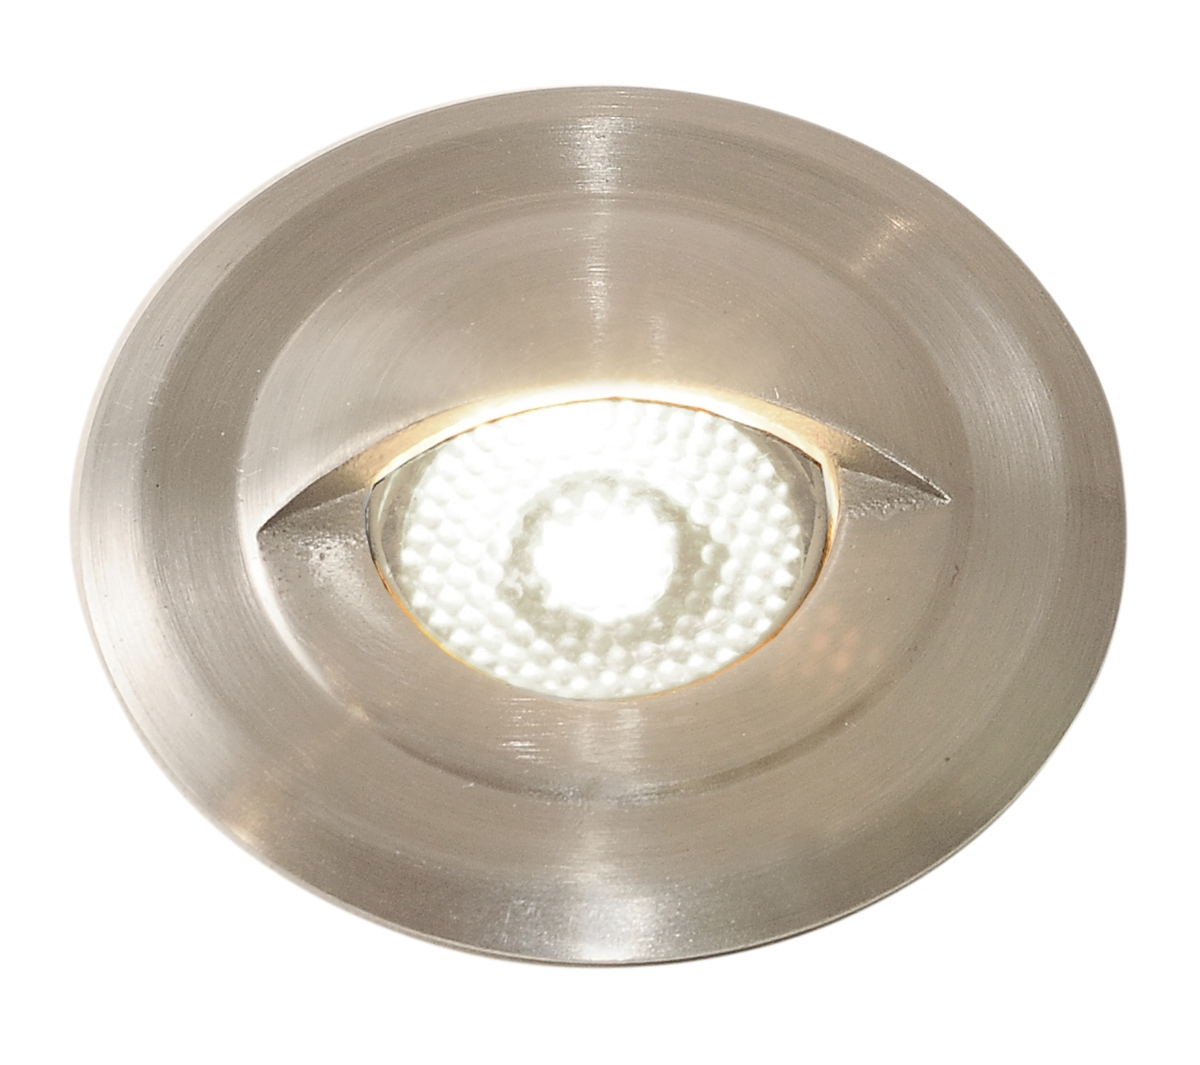 Awesome Outdoor Recessed Lighting Fixtures F37 In Stylish Image Inside Outdoor Recessed Ceiling Lights (#2 of 15)